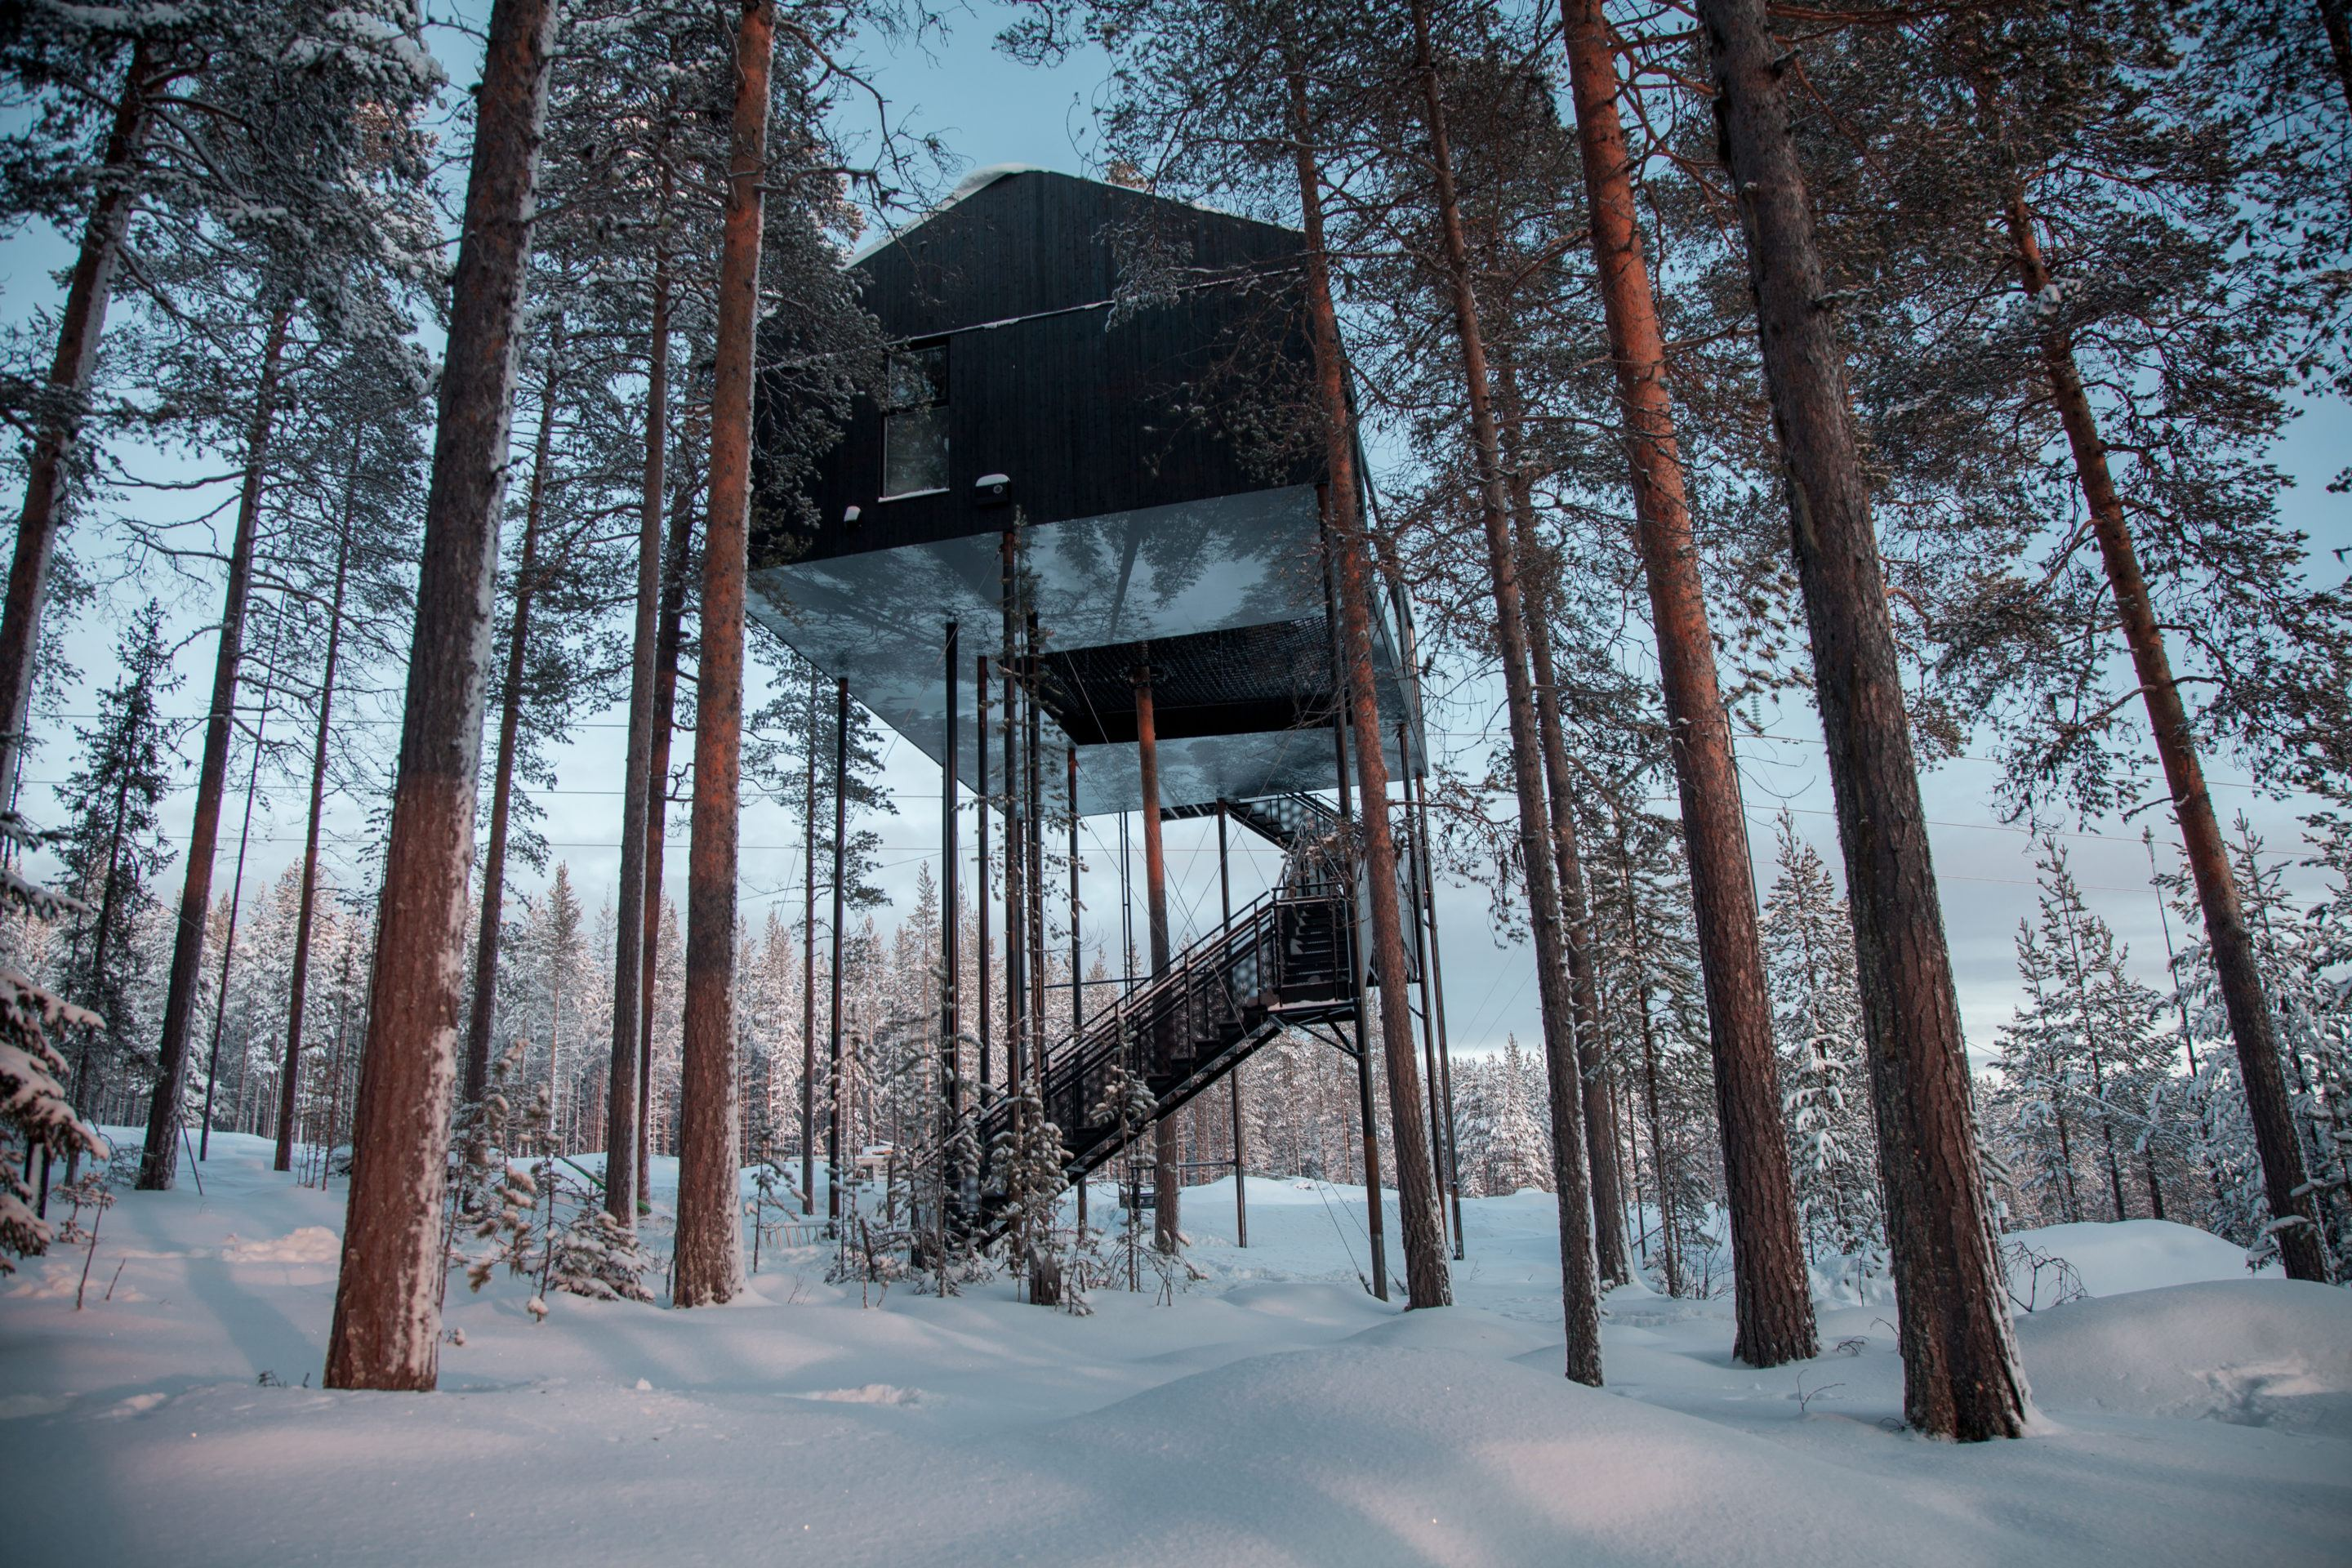 Hotels that feel like you are sleeping in nature.